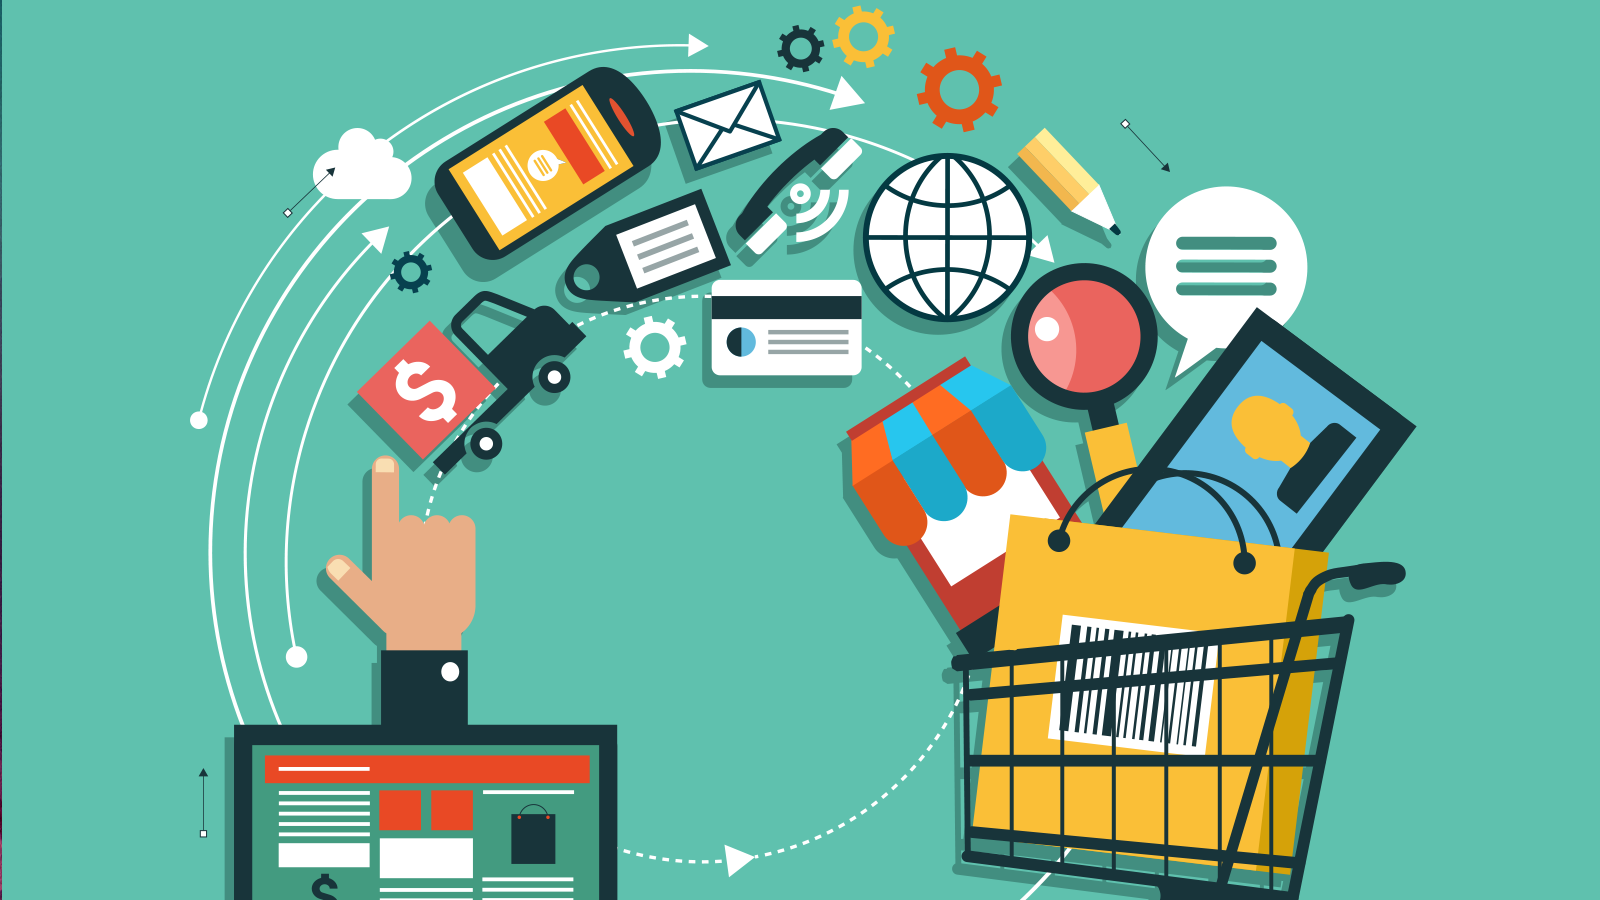 ecommerce business E-commerce businesses can require a more detailed valuation compared to other business models due to the variety of costs involved in running the business.